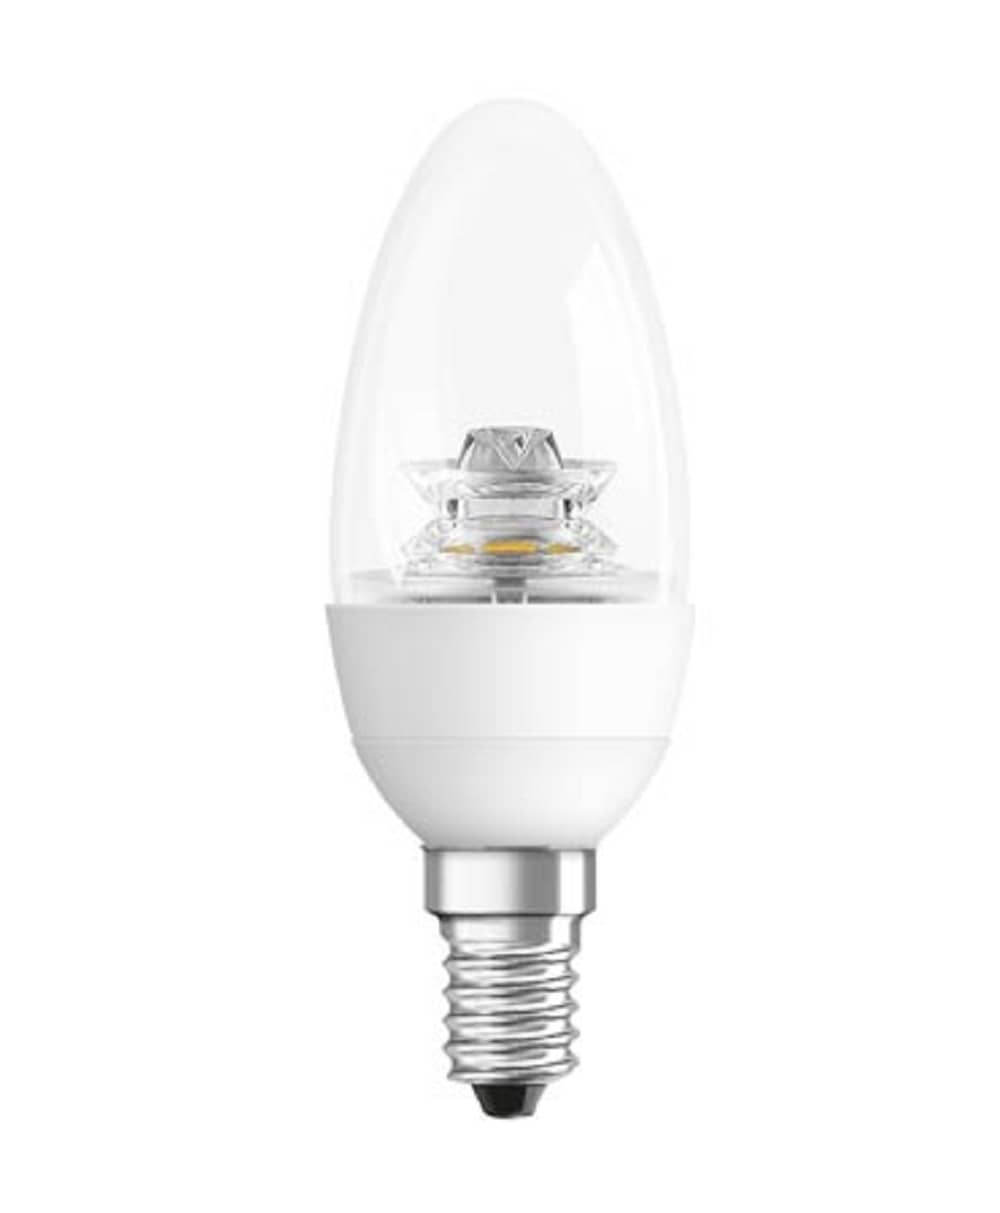 osram e14 led kerze superstar advanced b40 6w 470lm warmweiss dimmbar a 4052899 ebay. Black Bedroom Furniture Sets. Home Design Ideas